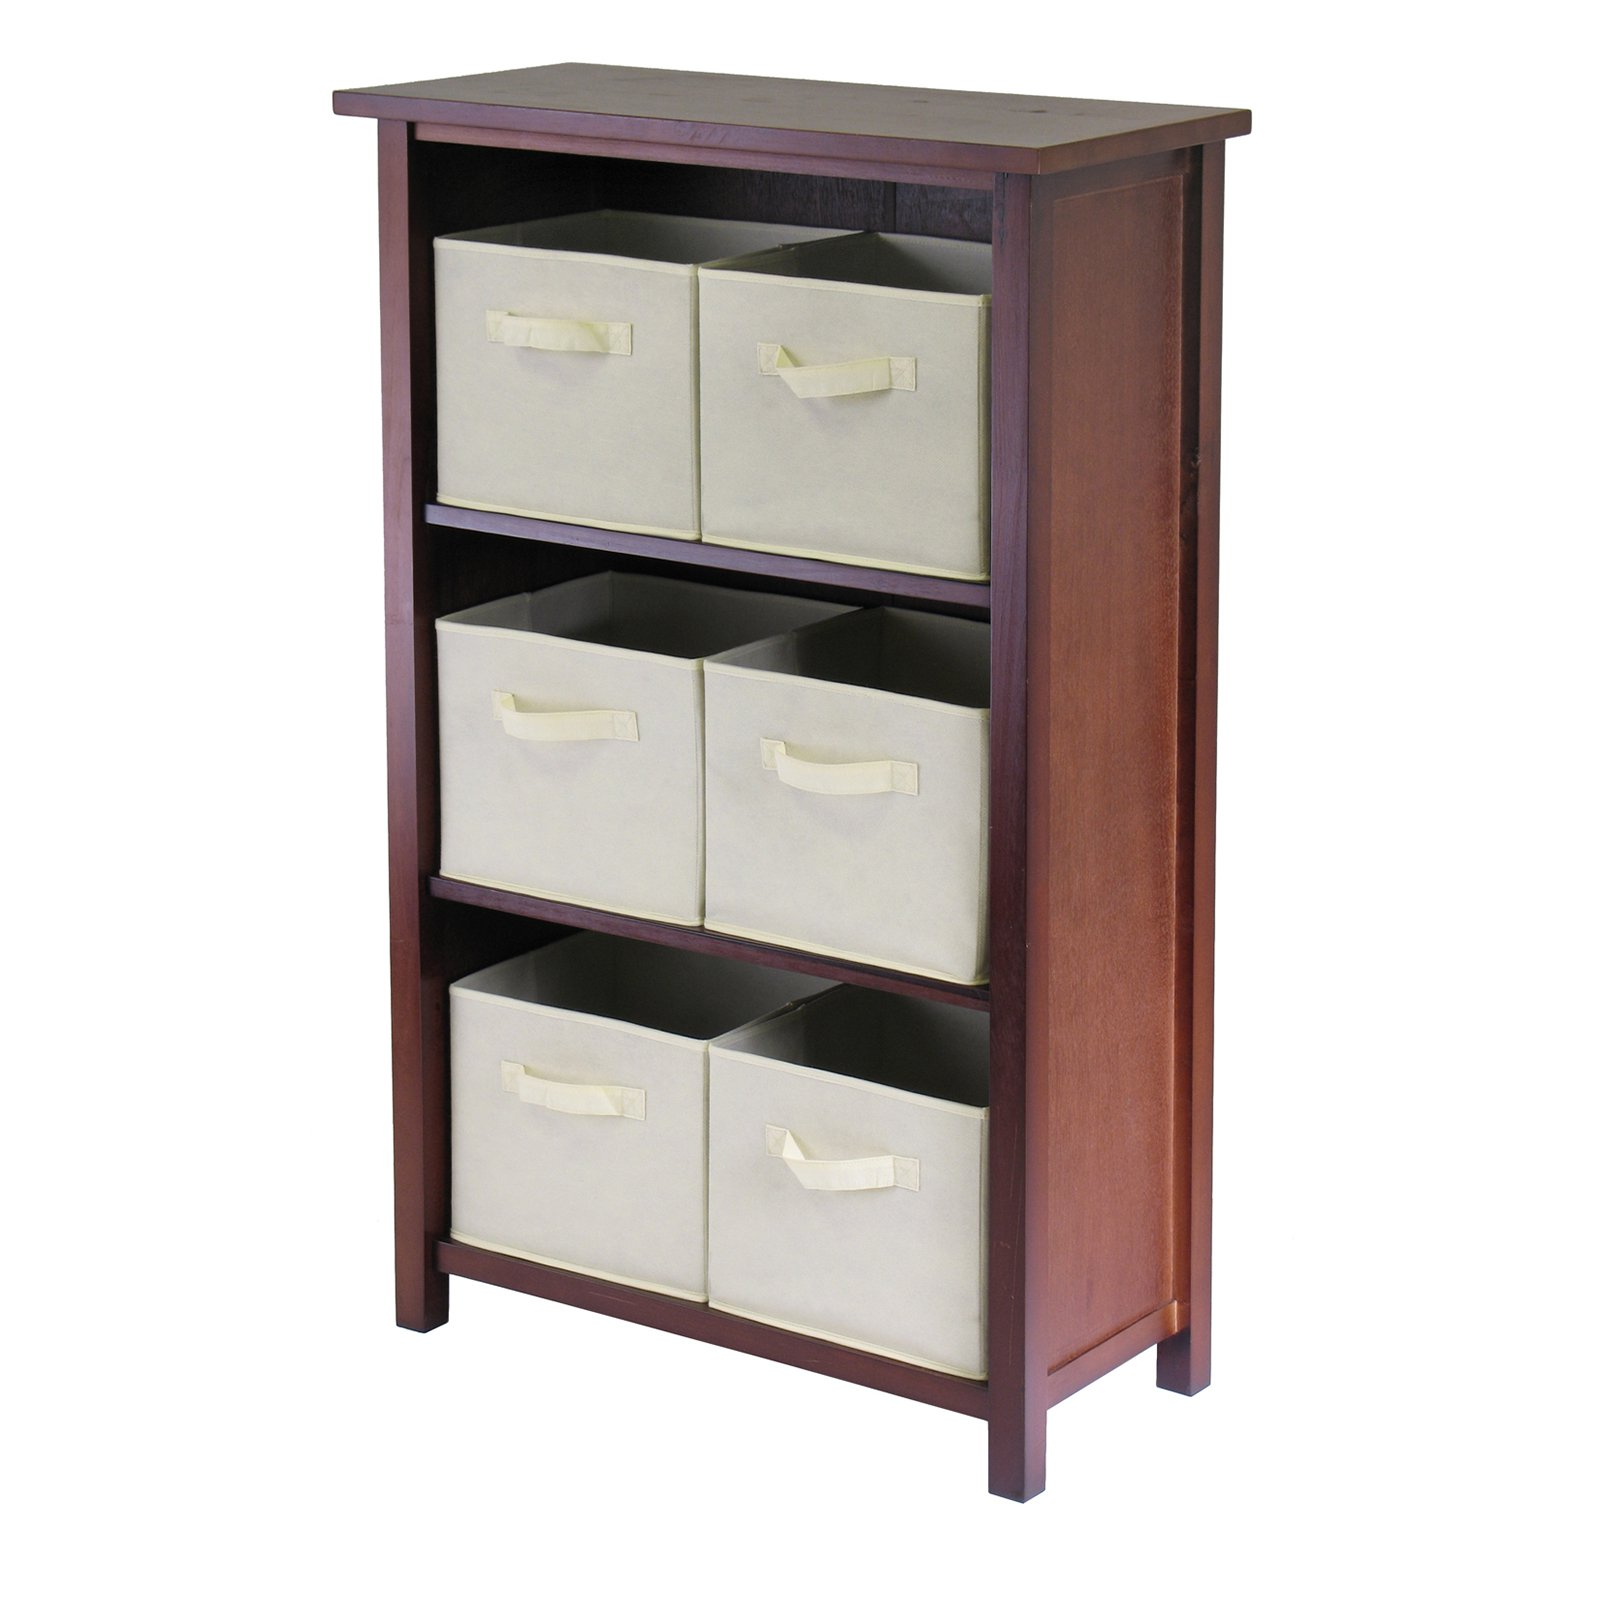 Winsome Wood Verona Storage Shelf with 6 Foldable Fabric Baskets